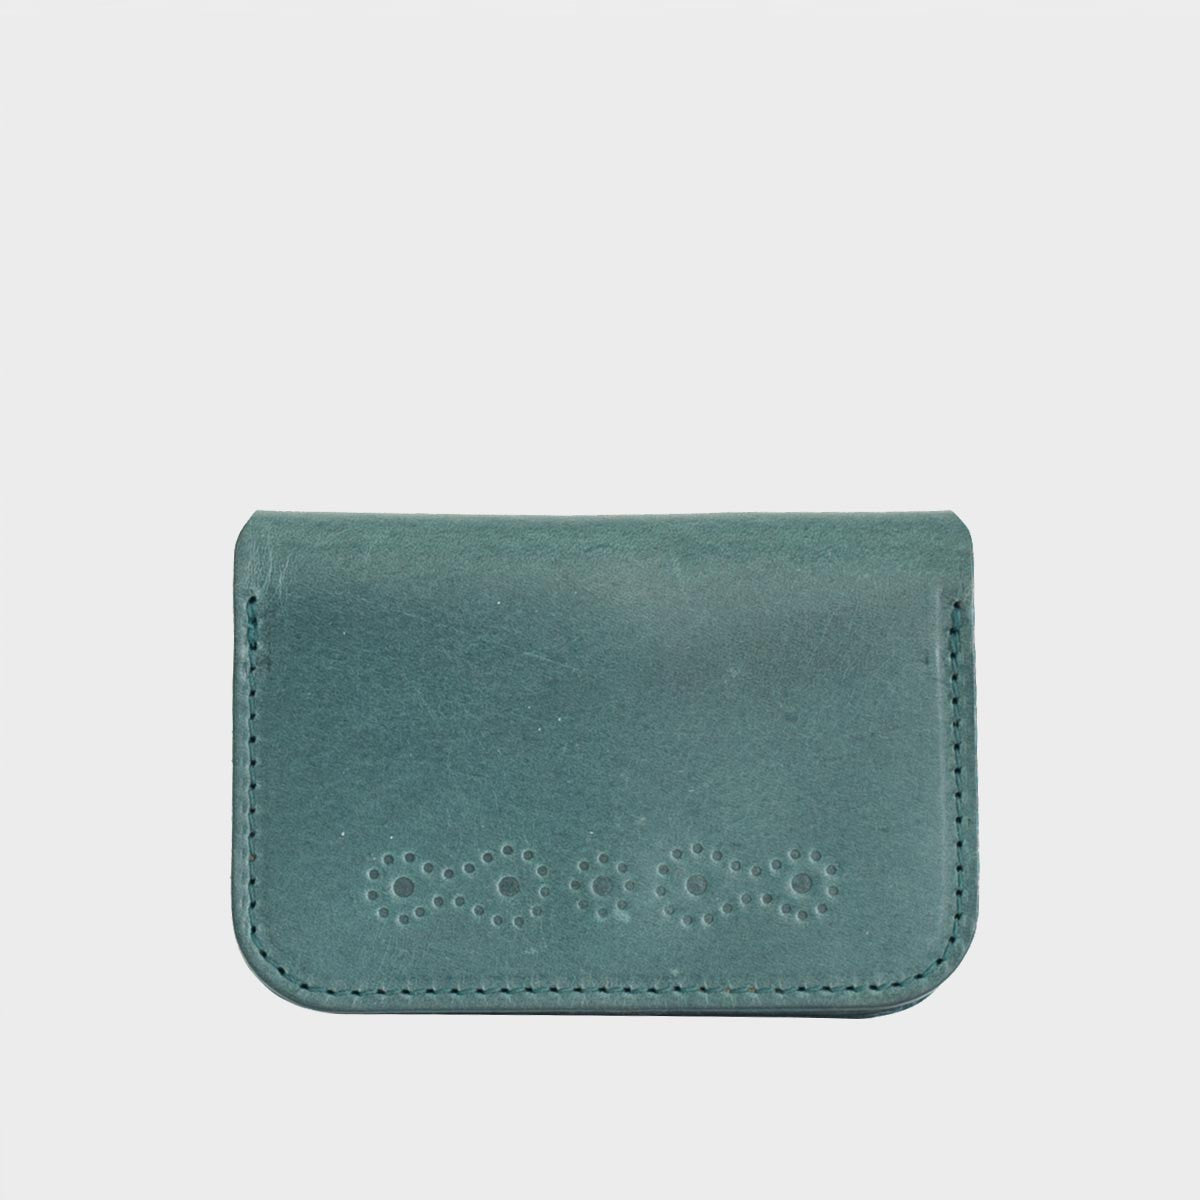 FIELD Teal Leather Folding Card Case